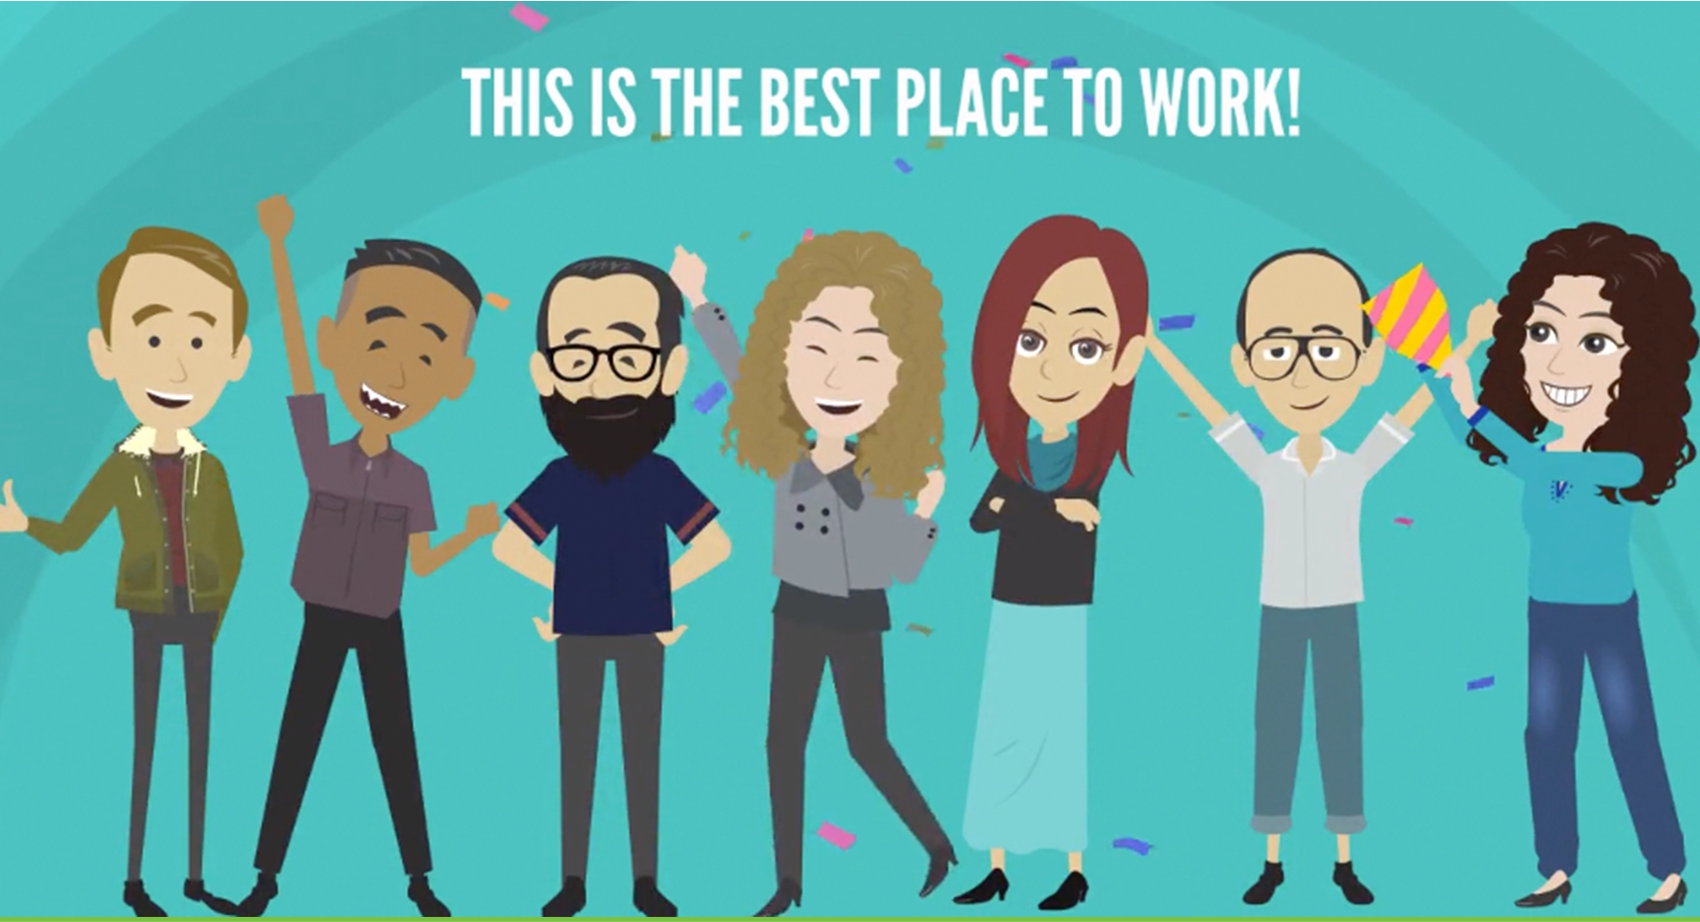 This is the best place to work!